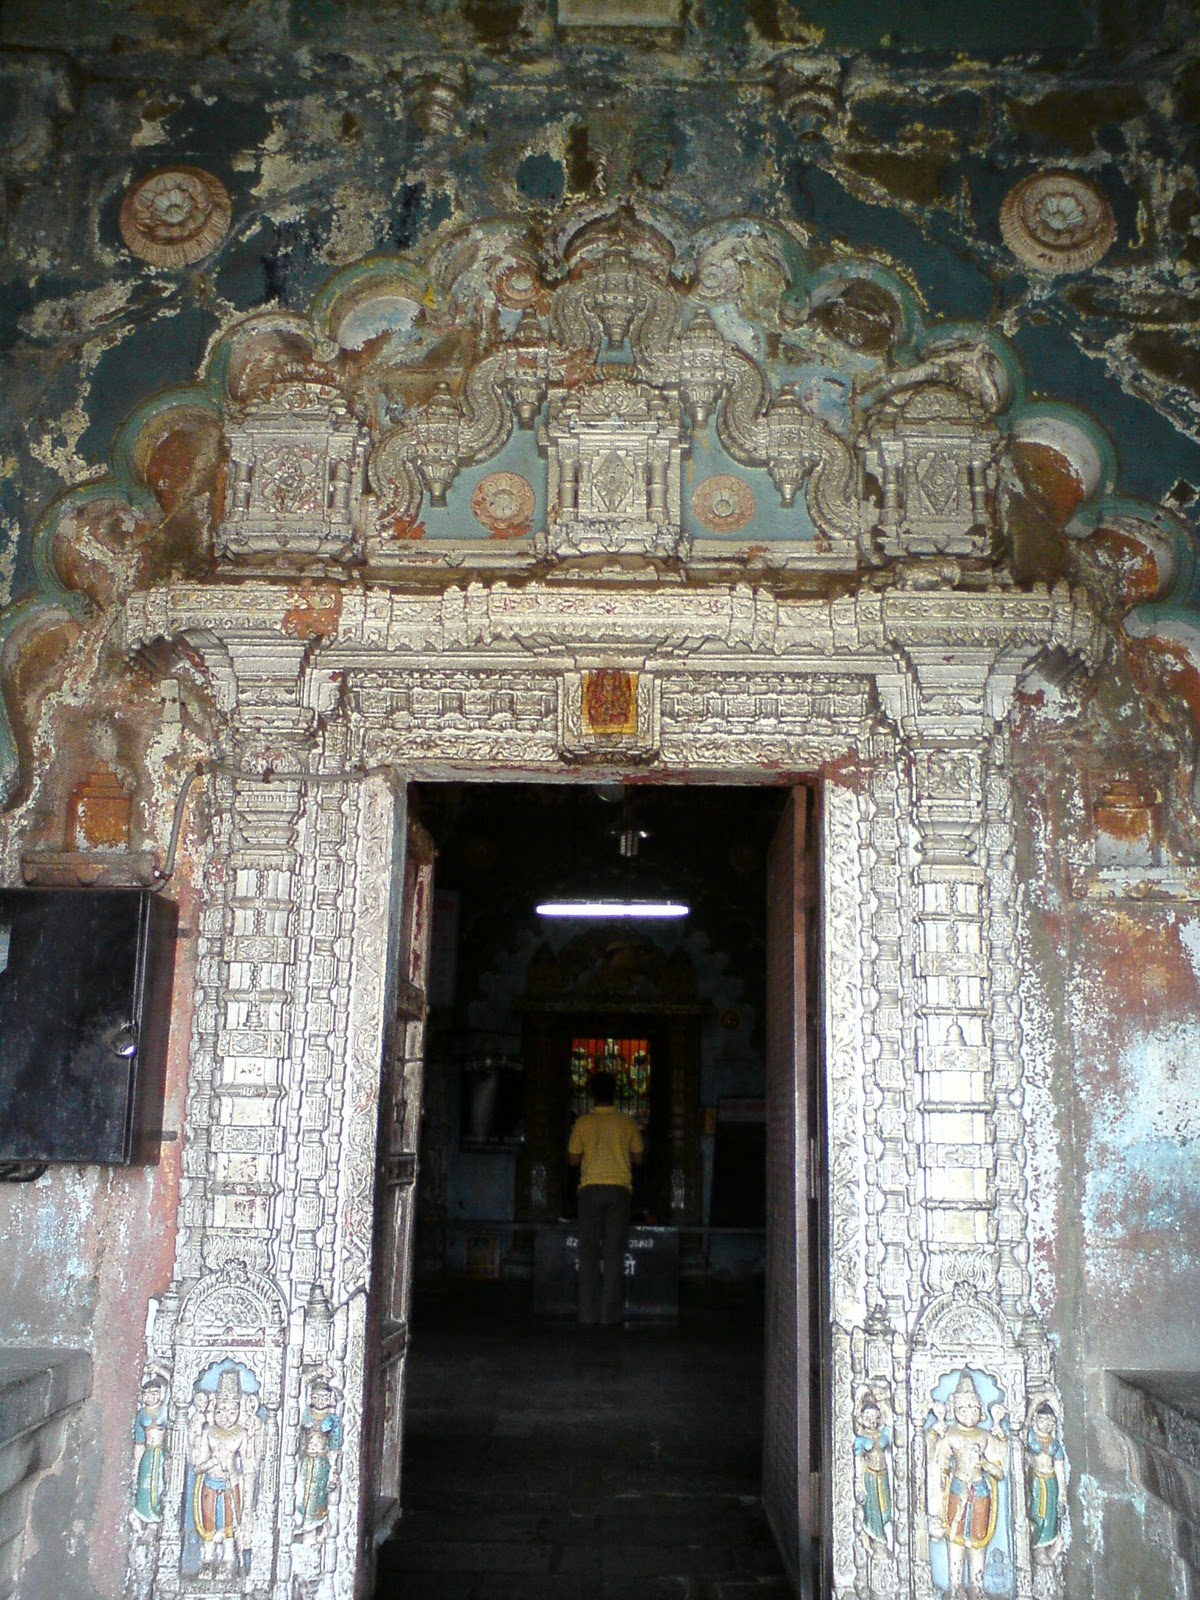 Entrance to the Sundar Narayan Temple in Nashik